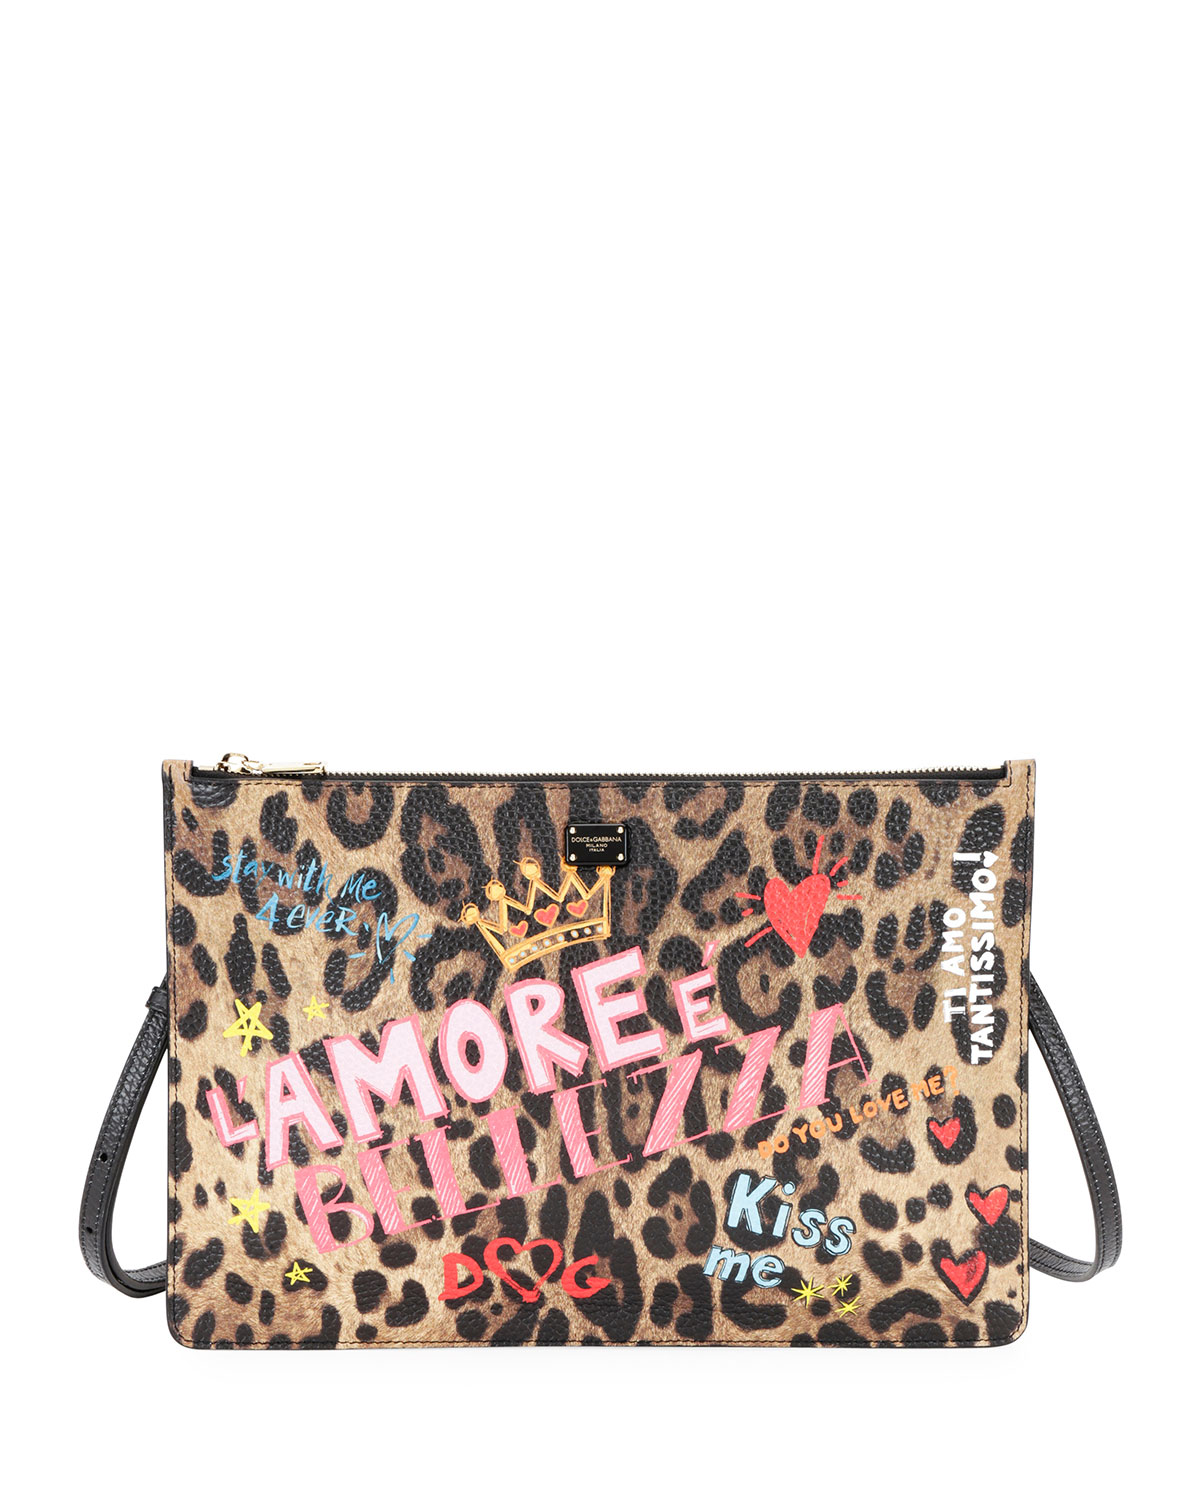 f8c7f63bbb Dolce   Gabbana Leo Graffiti Leather Crossbody Pouch Bag